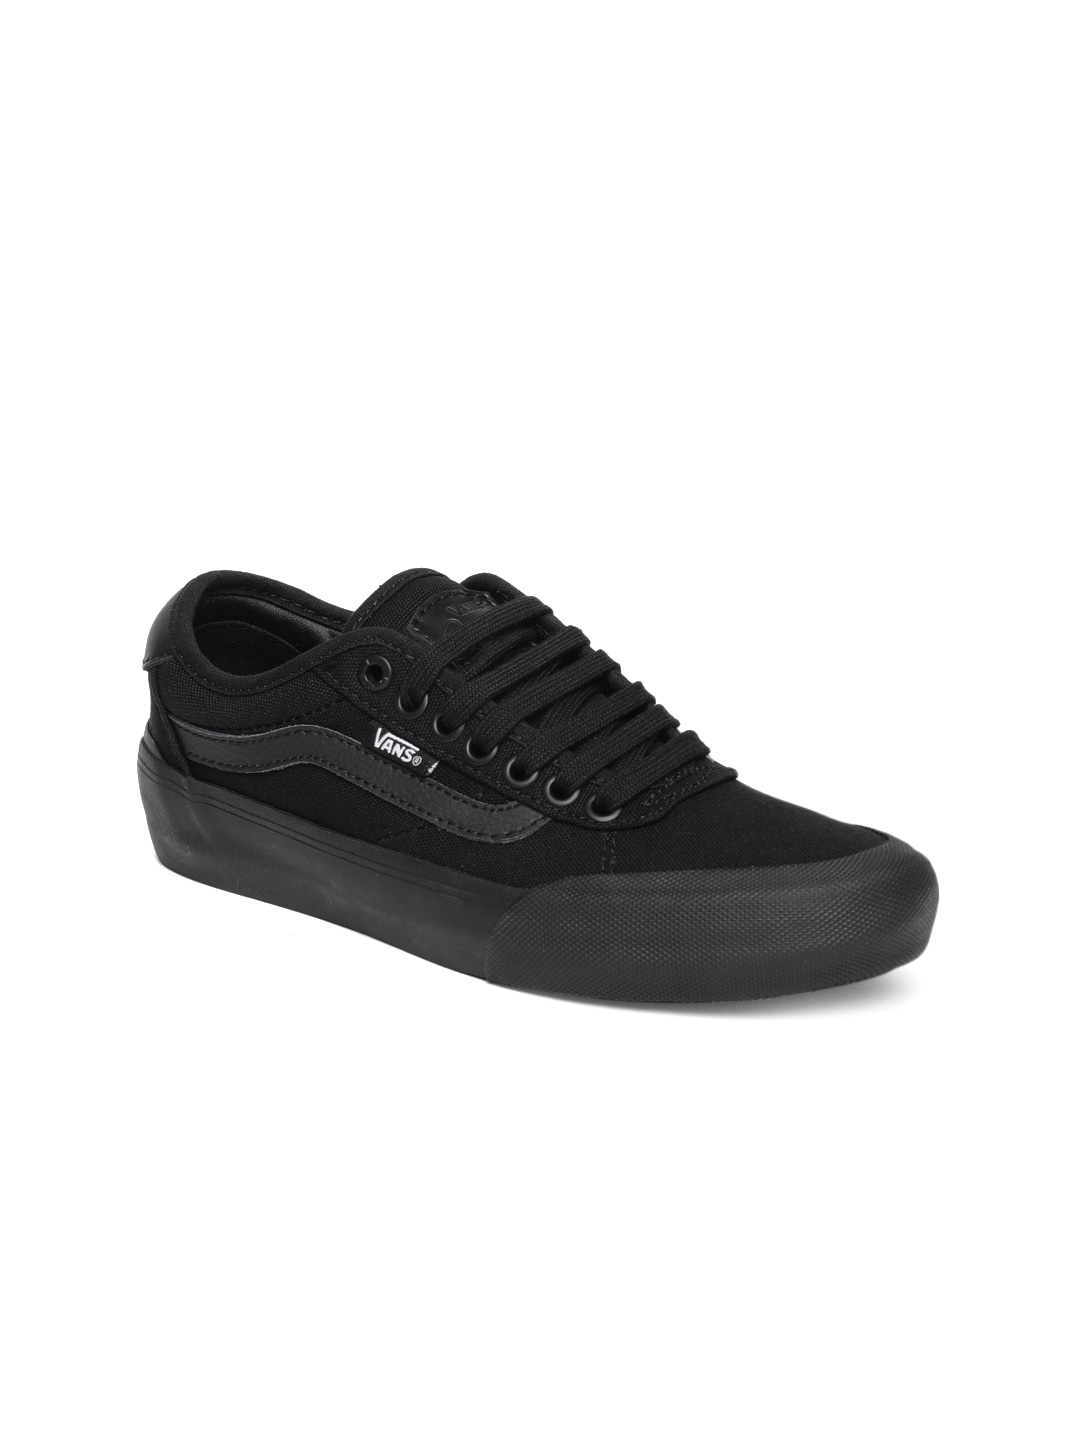 ef6bc1c7e0 Vans Men Black Casual Shoes Myntra - Buy Vans Men Black Casual Shoes Myntra  online in India